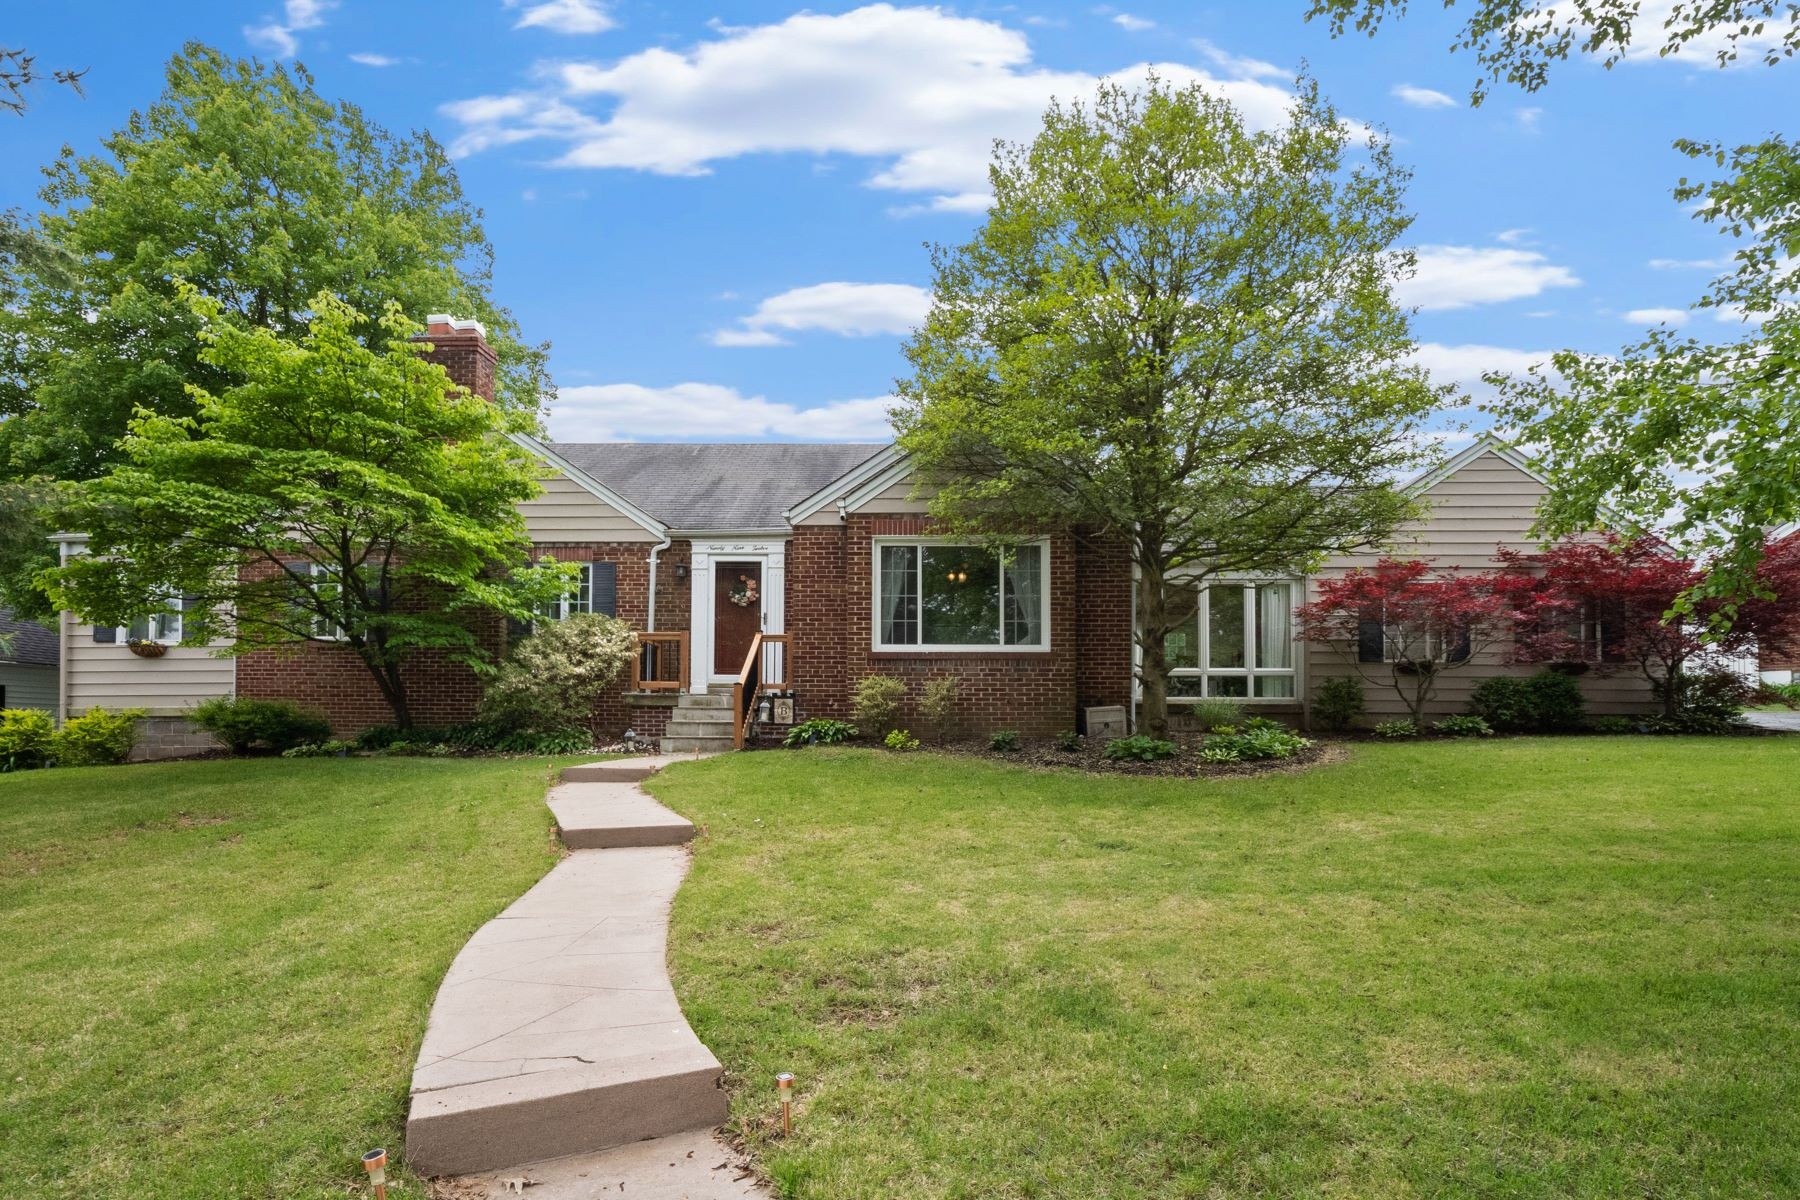 Single Family Homes for Active at Meticulously Maintained Brick Ranch 9912 Berwick Drive Affton, Missouri 63123 United States